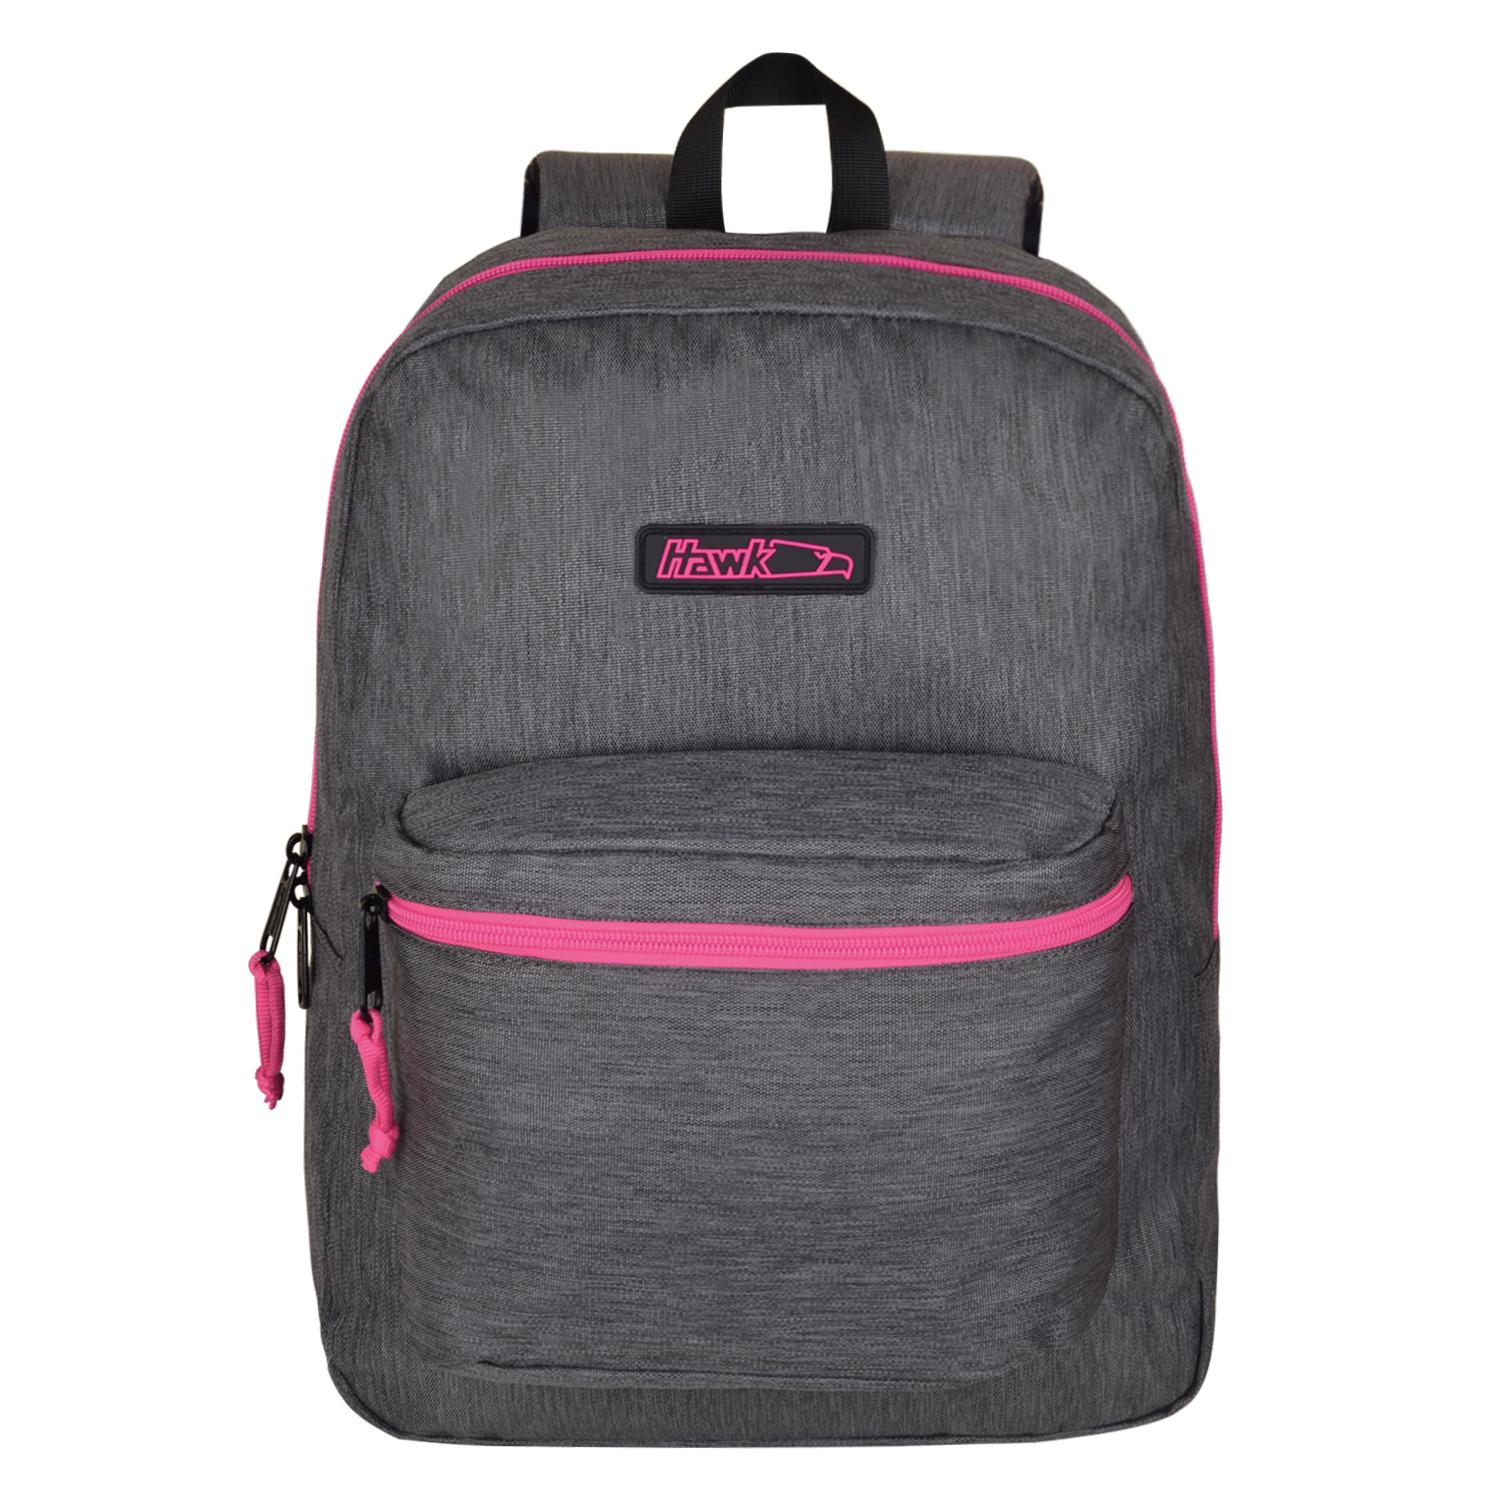 Cheap fashion backpacks uk 20